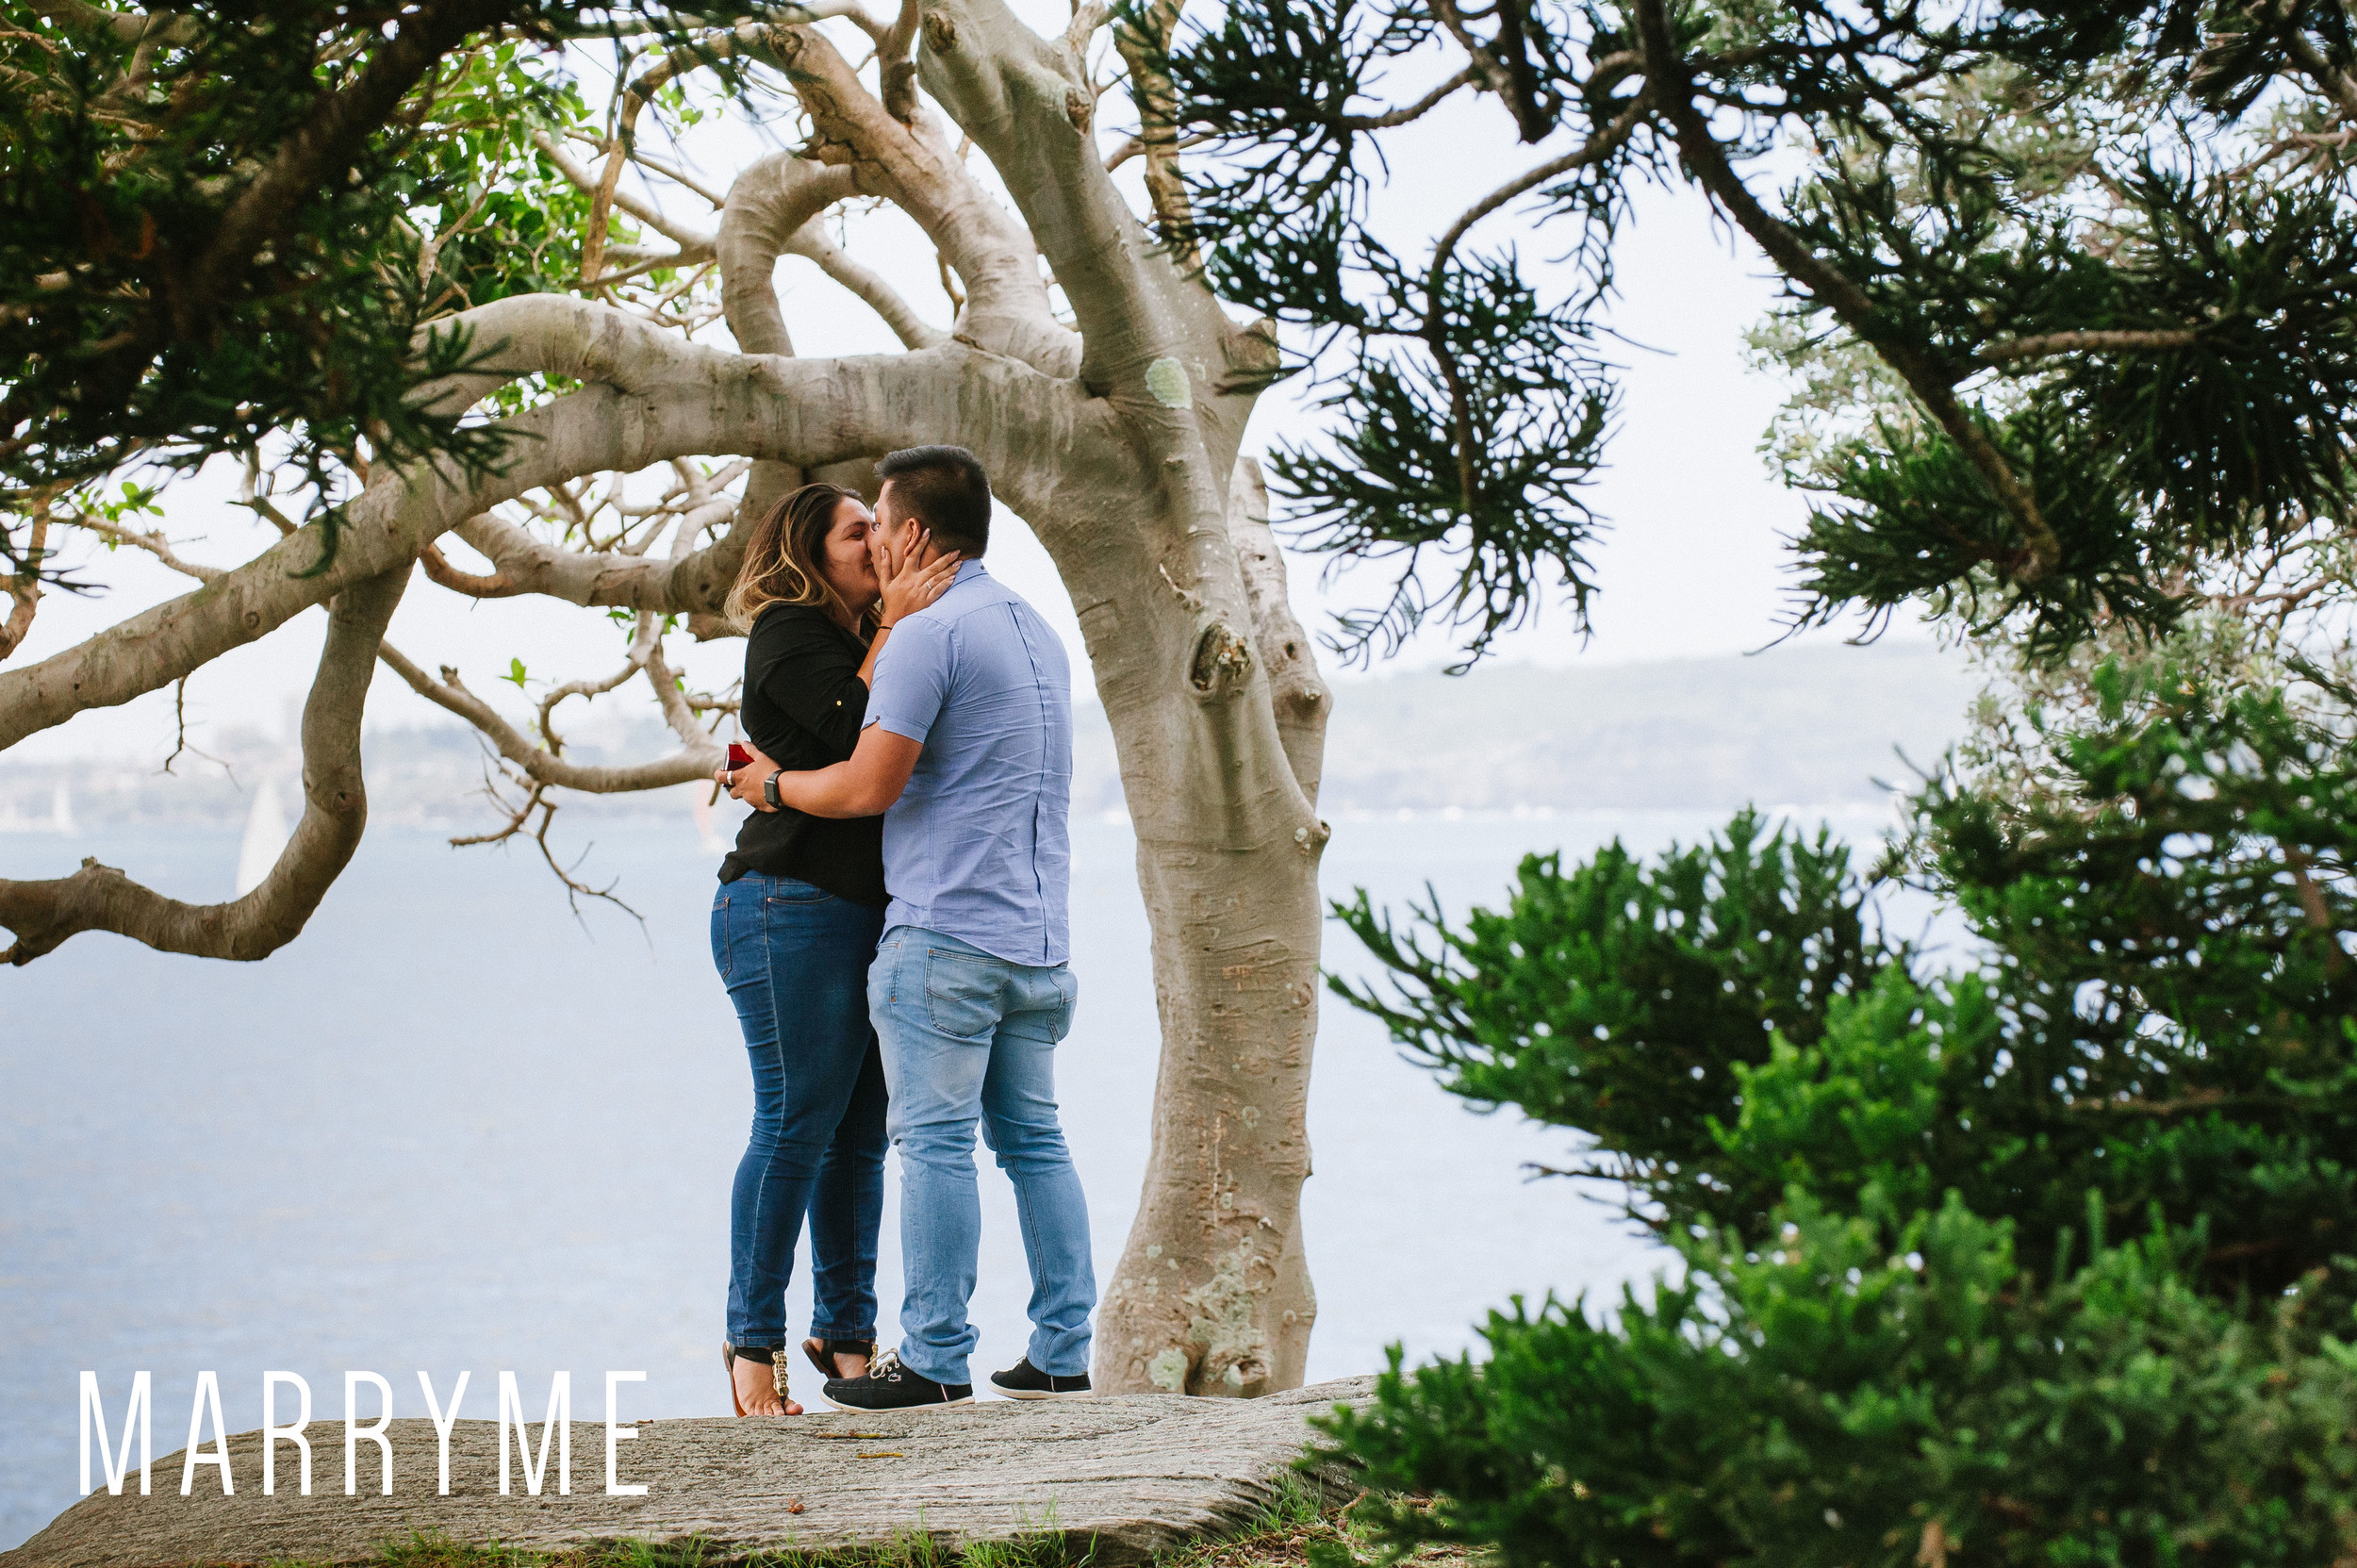 Sydney Harbour Shark Island marriage proposal 3